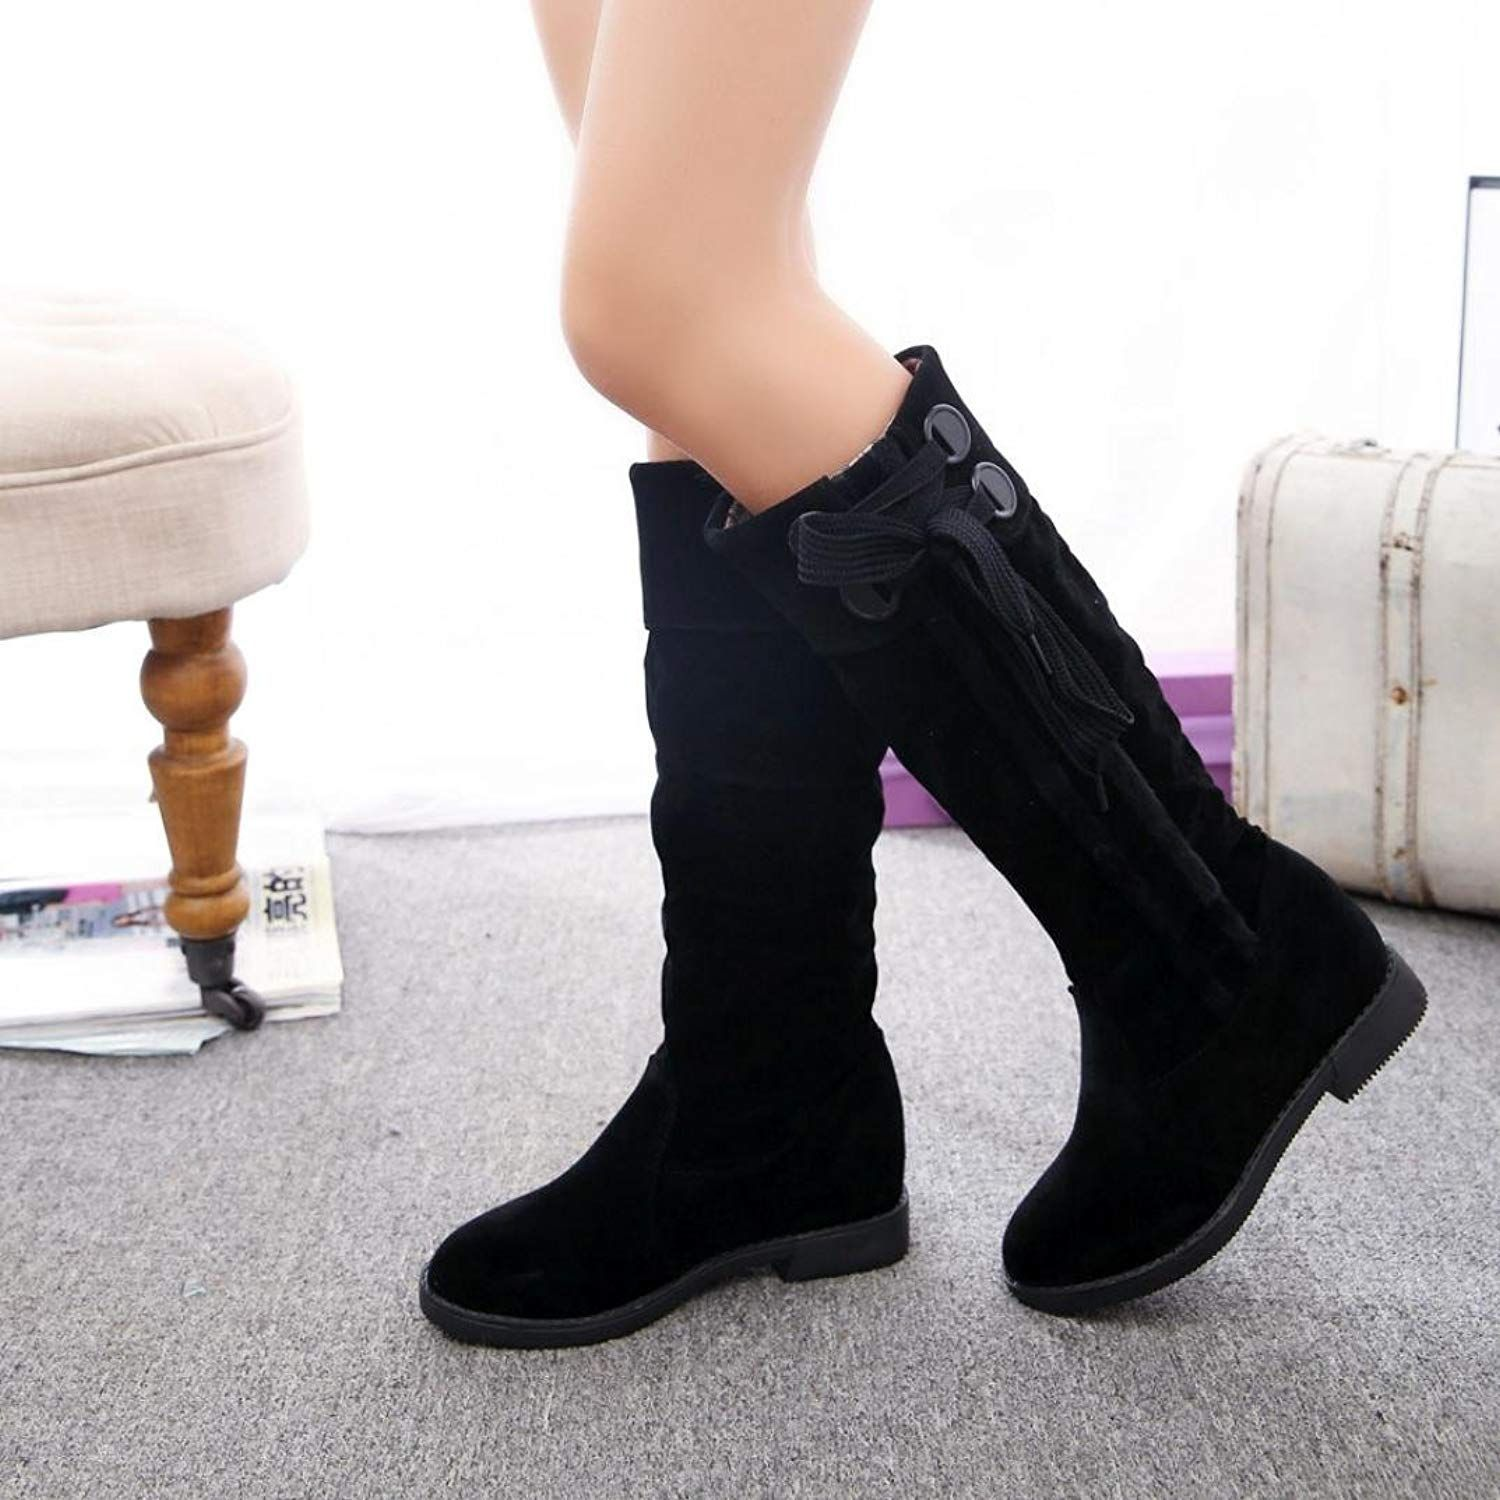 c58cf1abdf FENZL Women's Knee High Boots,Winter Flat Heel Snow Boots *** See this  great product. (This is an affiliate link) #suadeboots